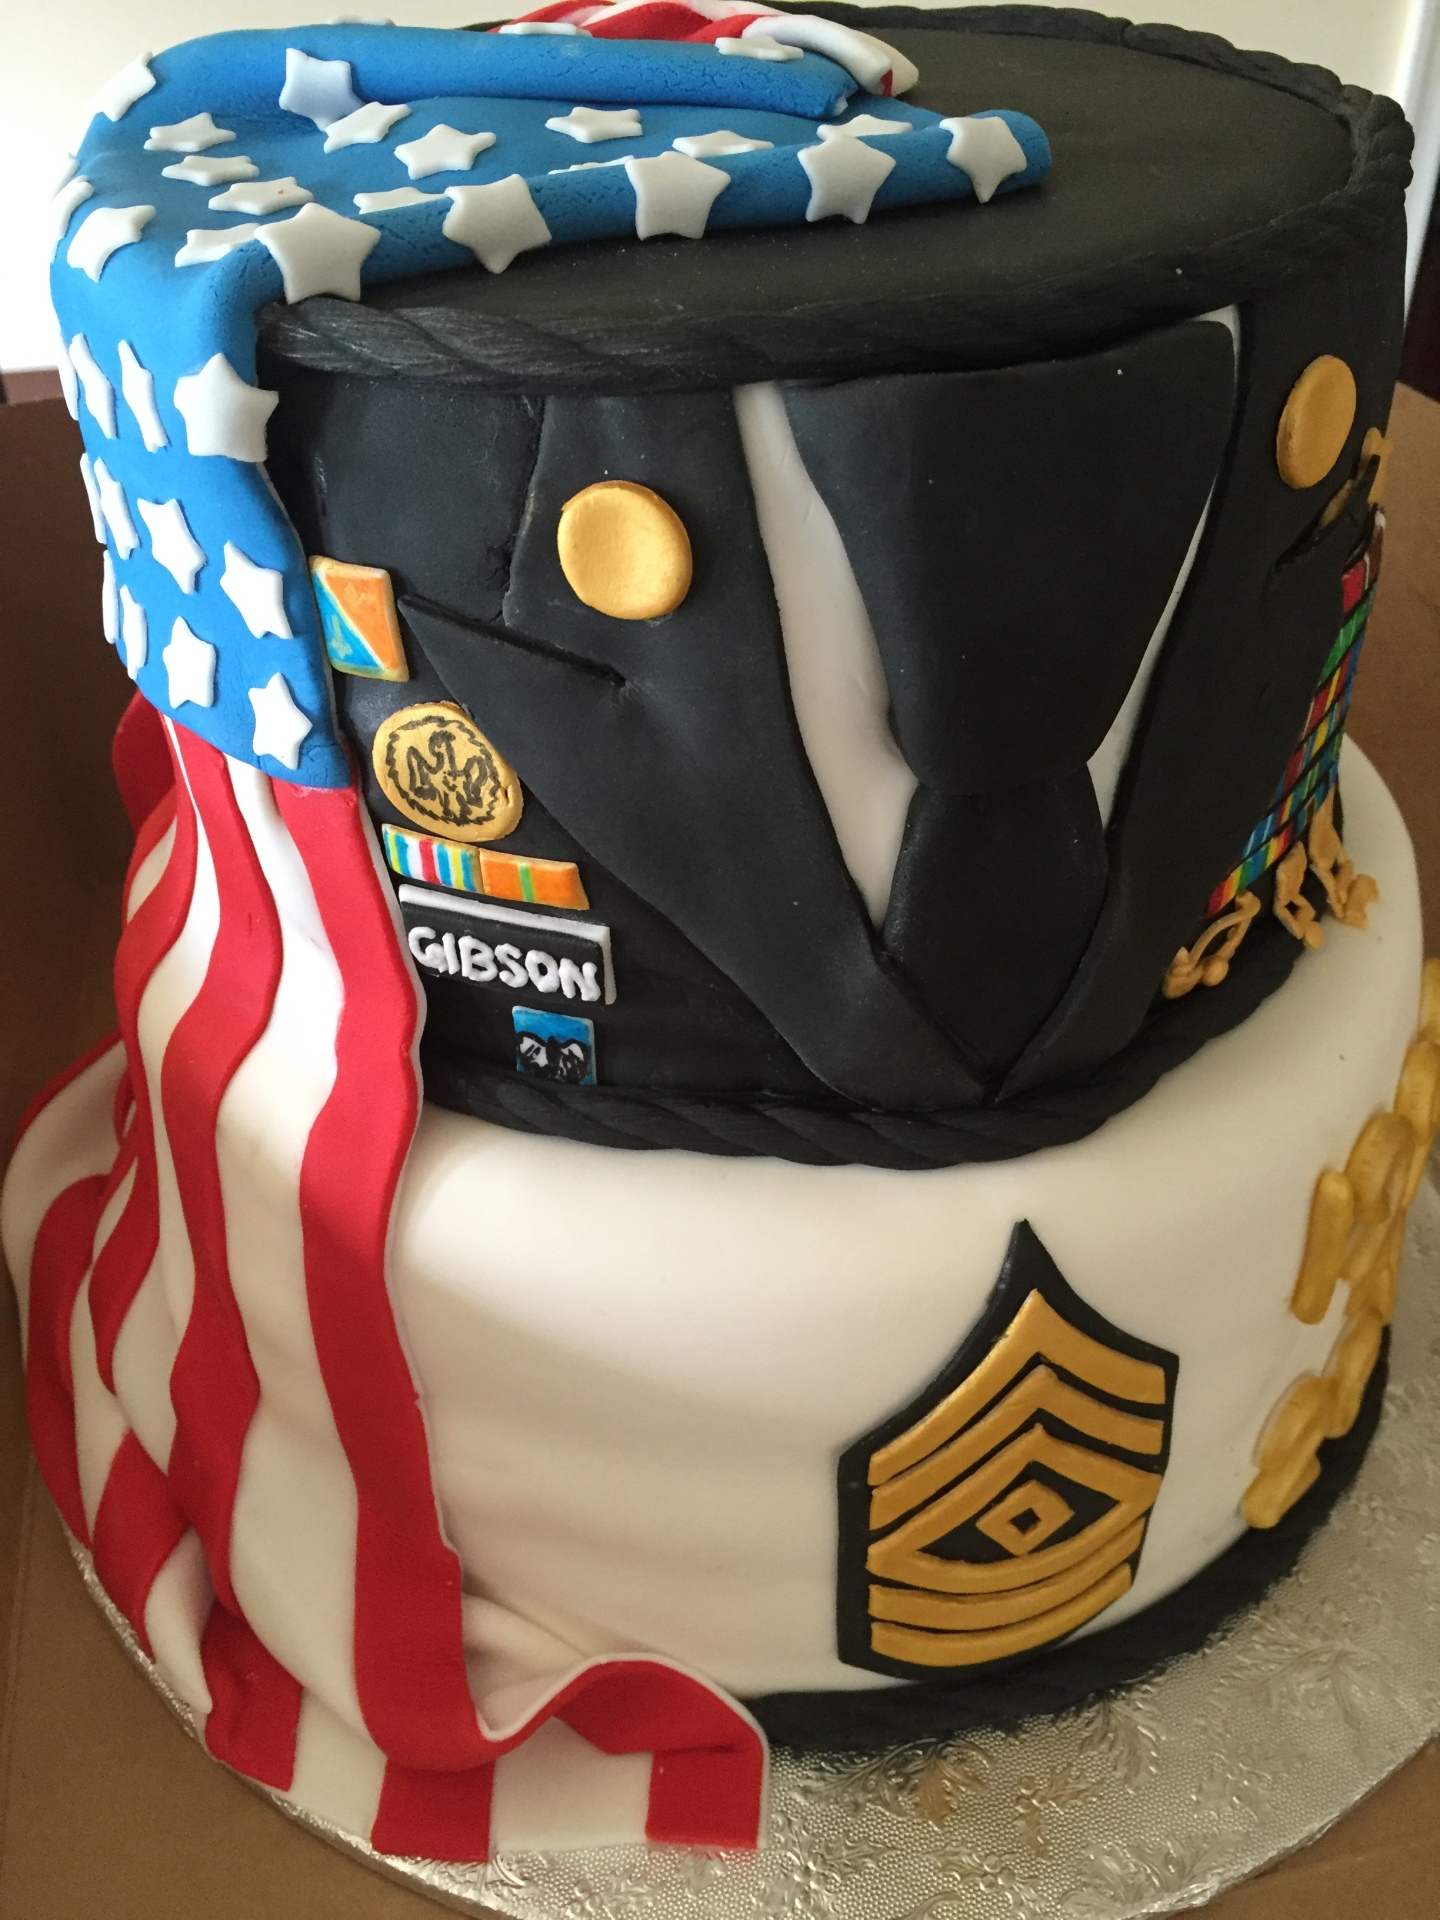 American flag promotion cake, retirement cake,military uniform cake